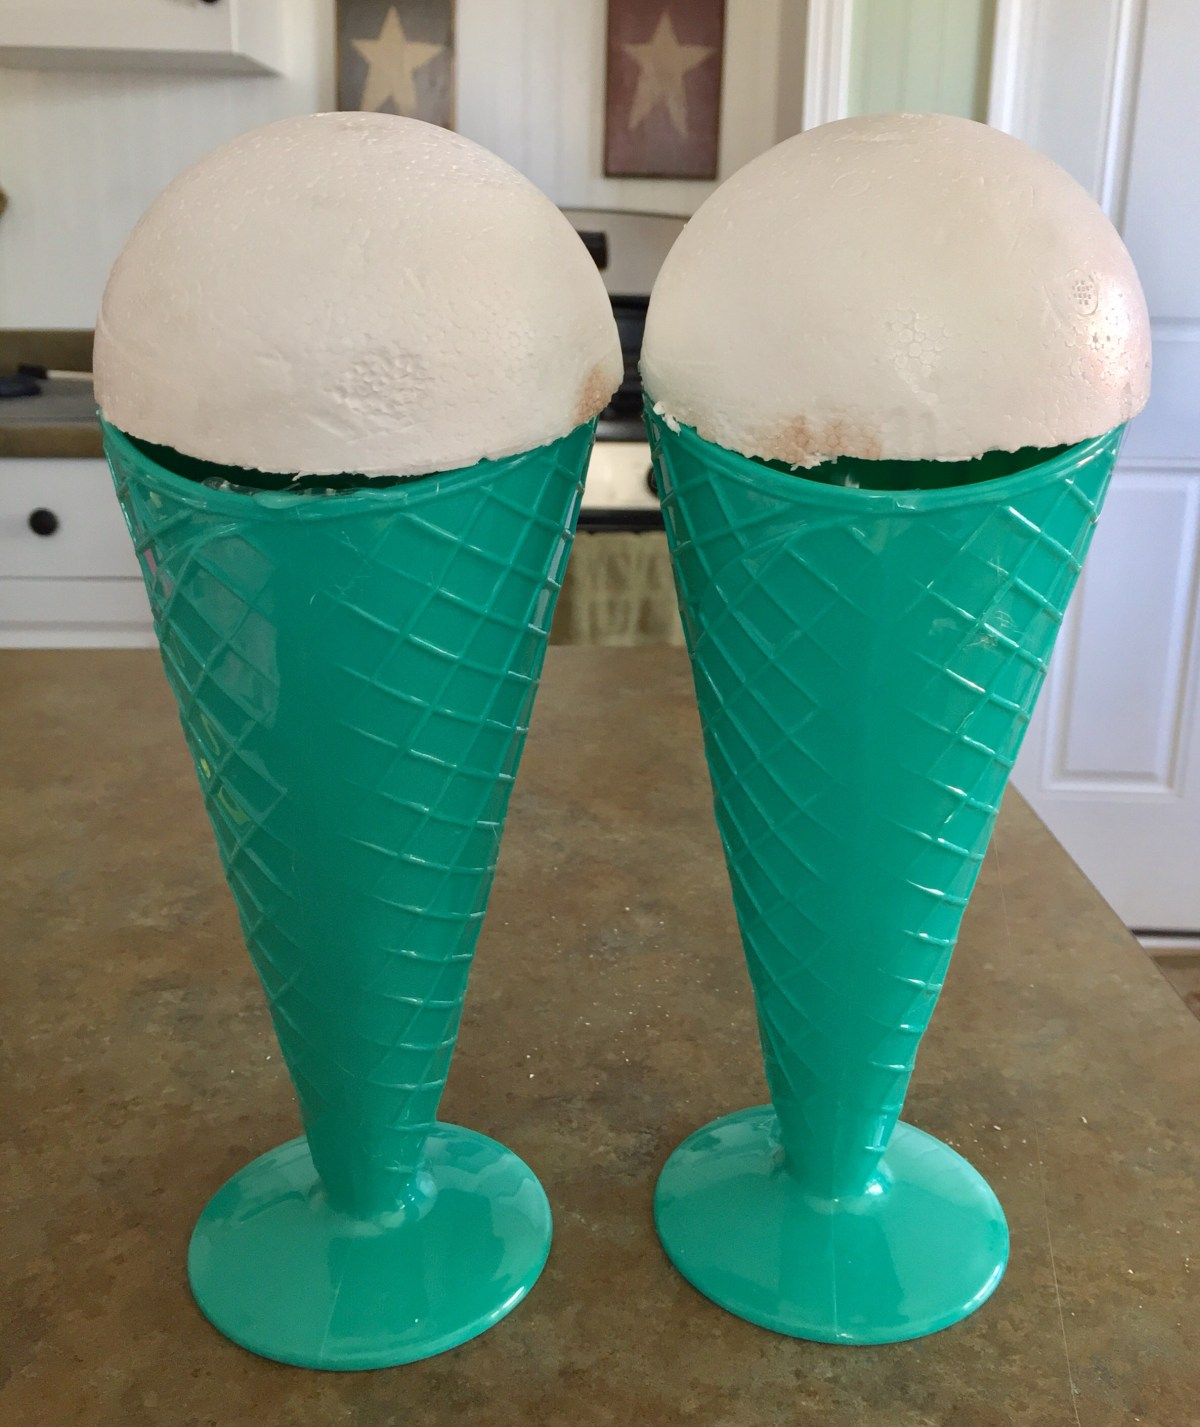 Styrofoam ball cut in half sitting on top of milkshake cups. #taffymilkshake #candymilkshake #valentinesday #icecreamsocial #icecreambirthday